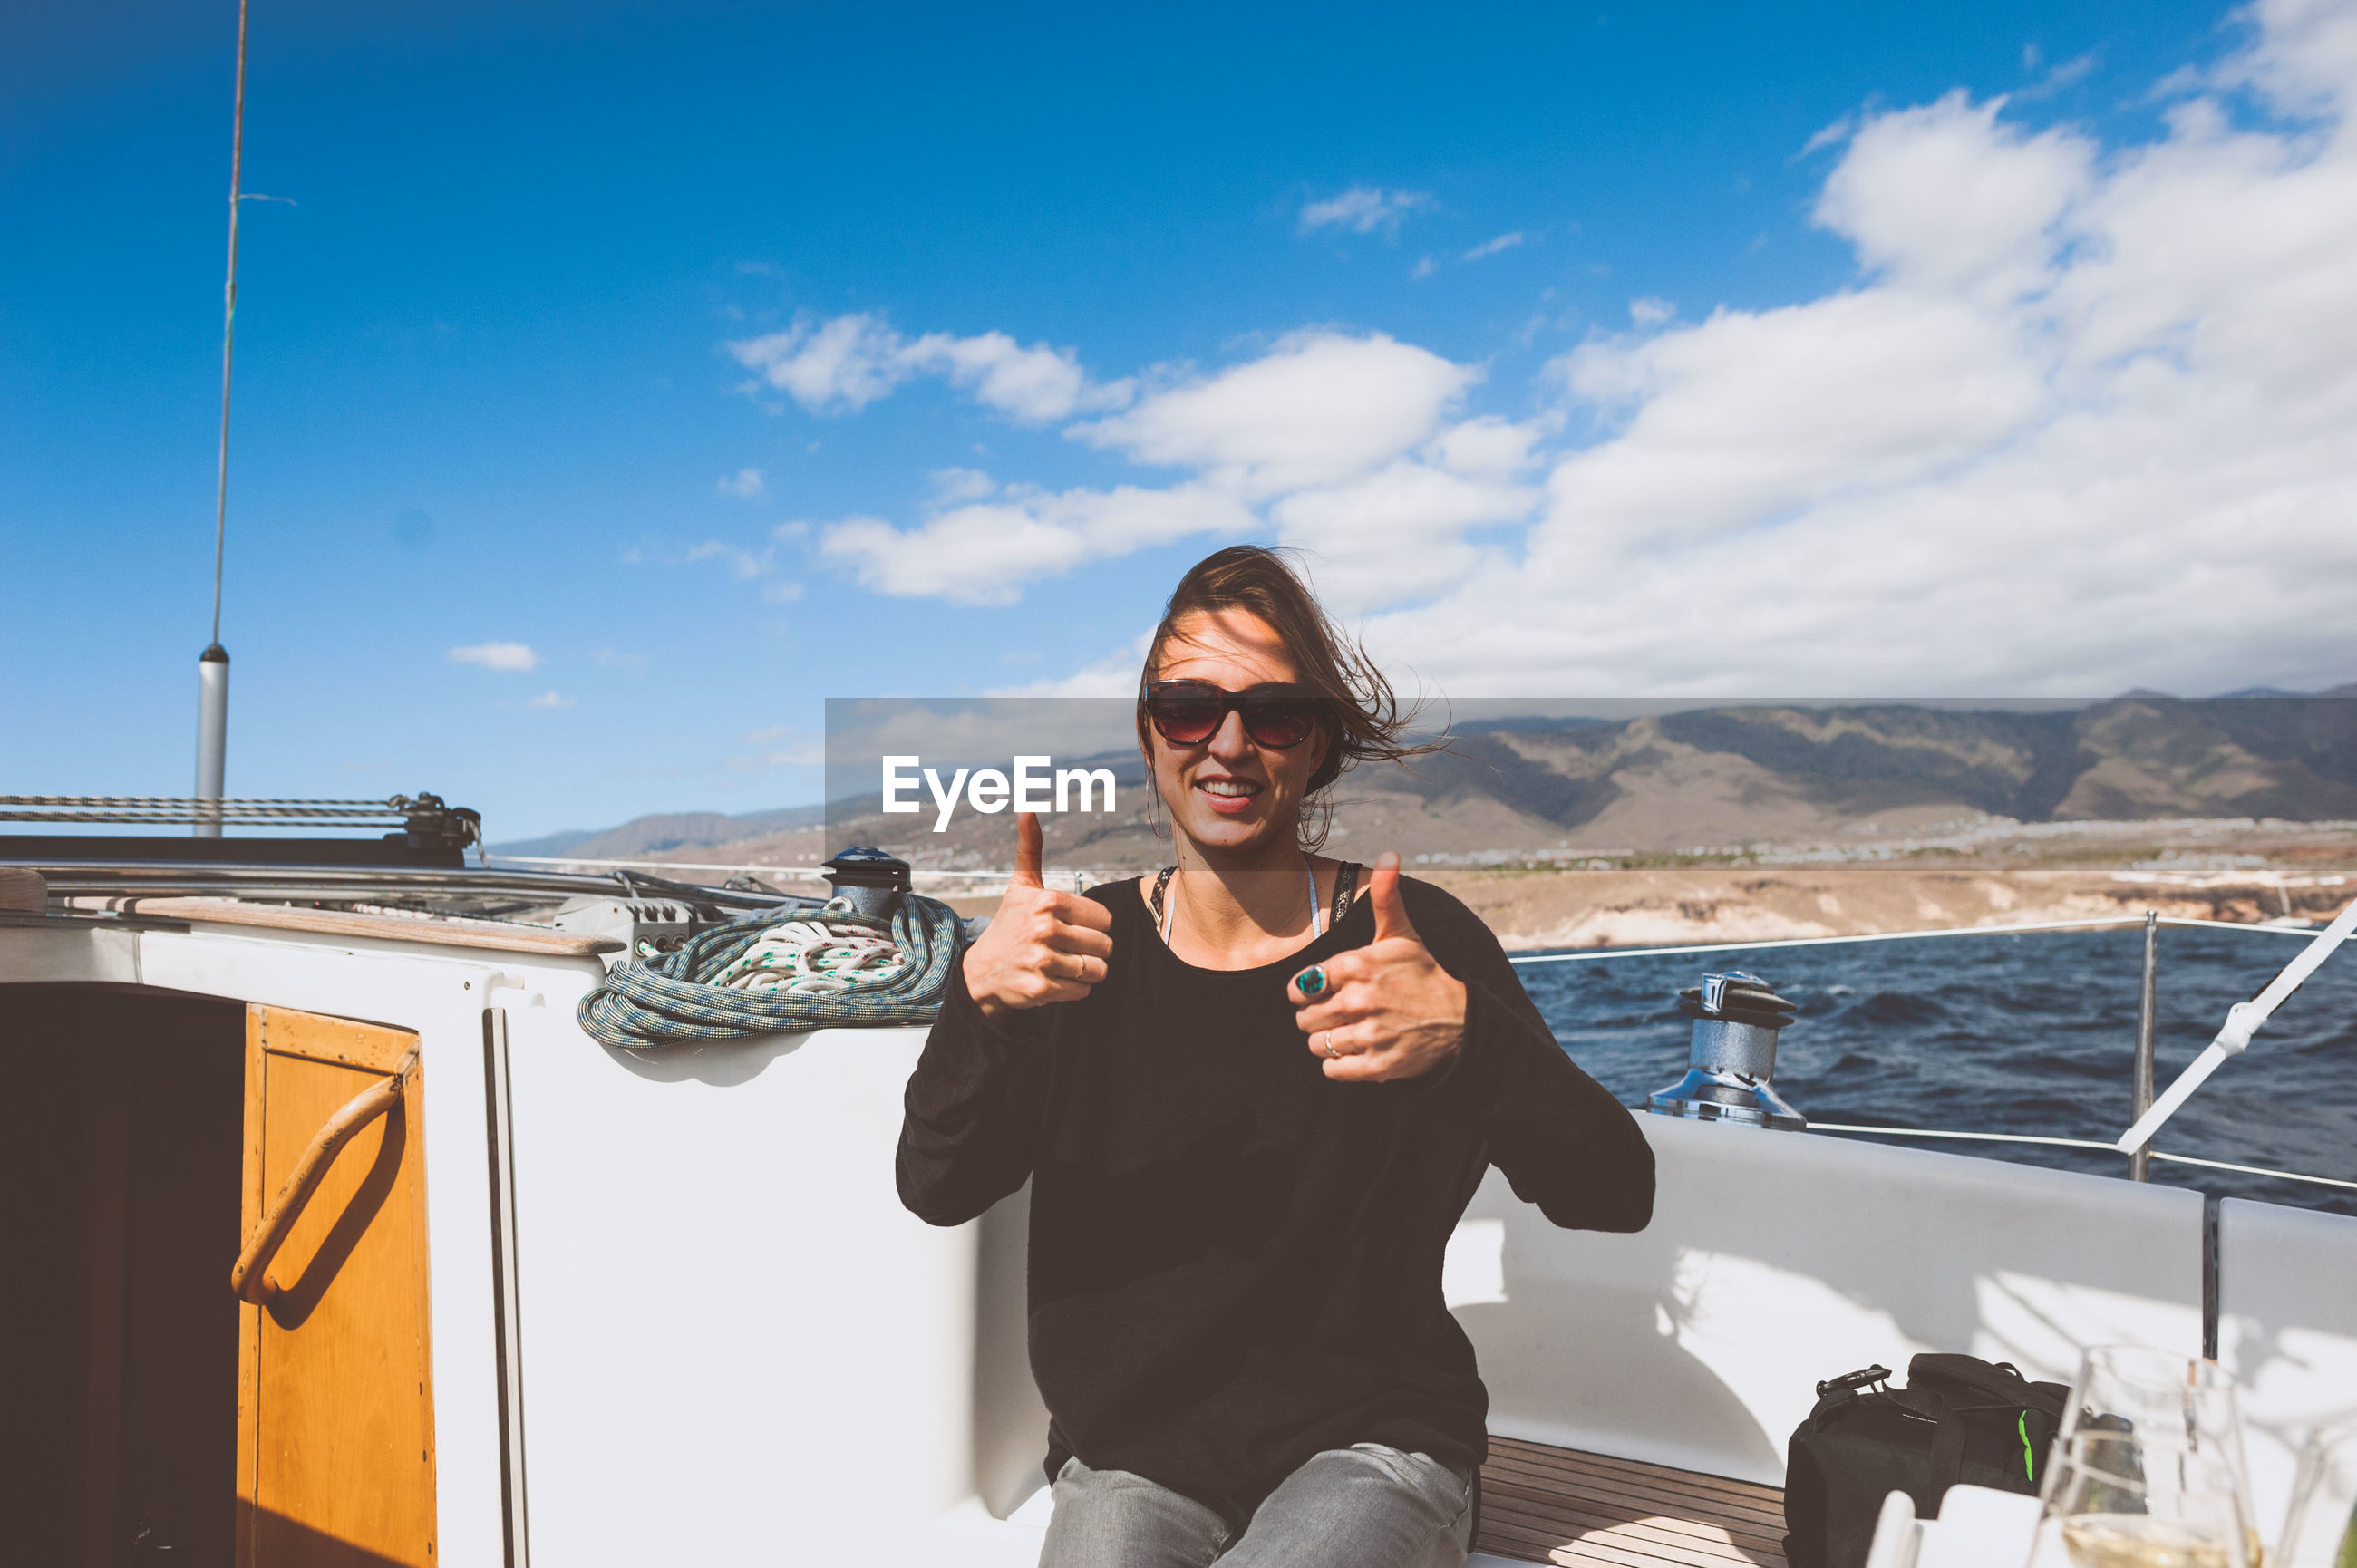 Woman with sunglasses on boat showing thumbs up sign against sky